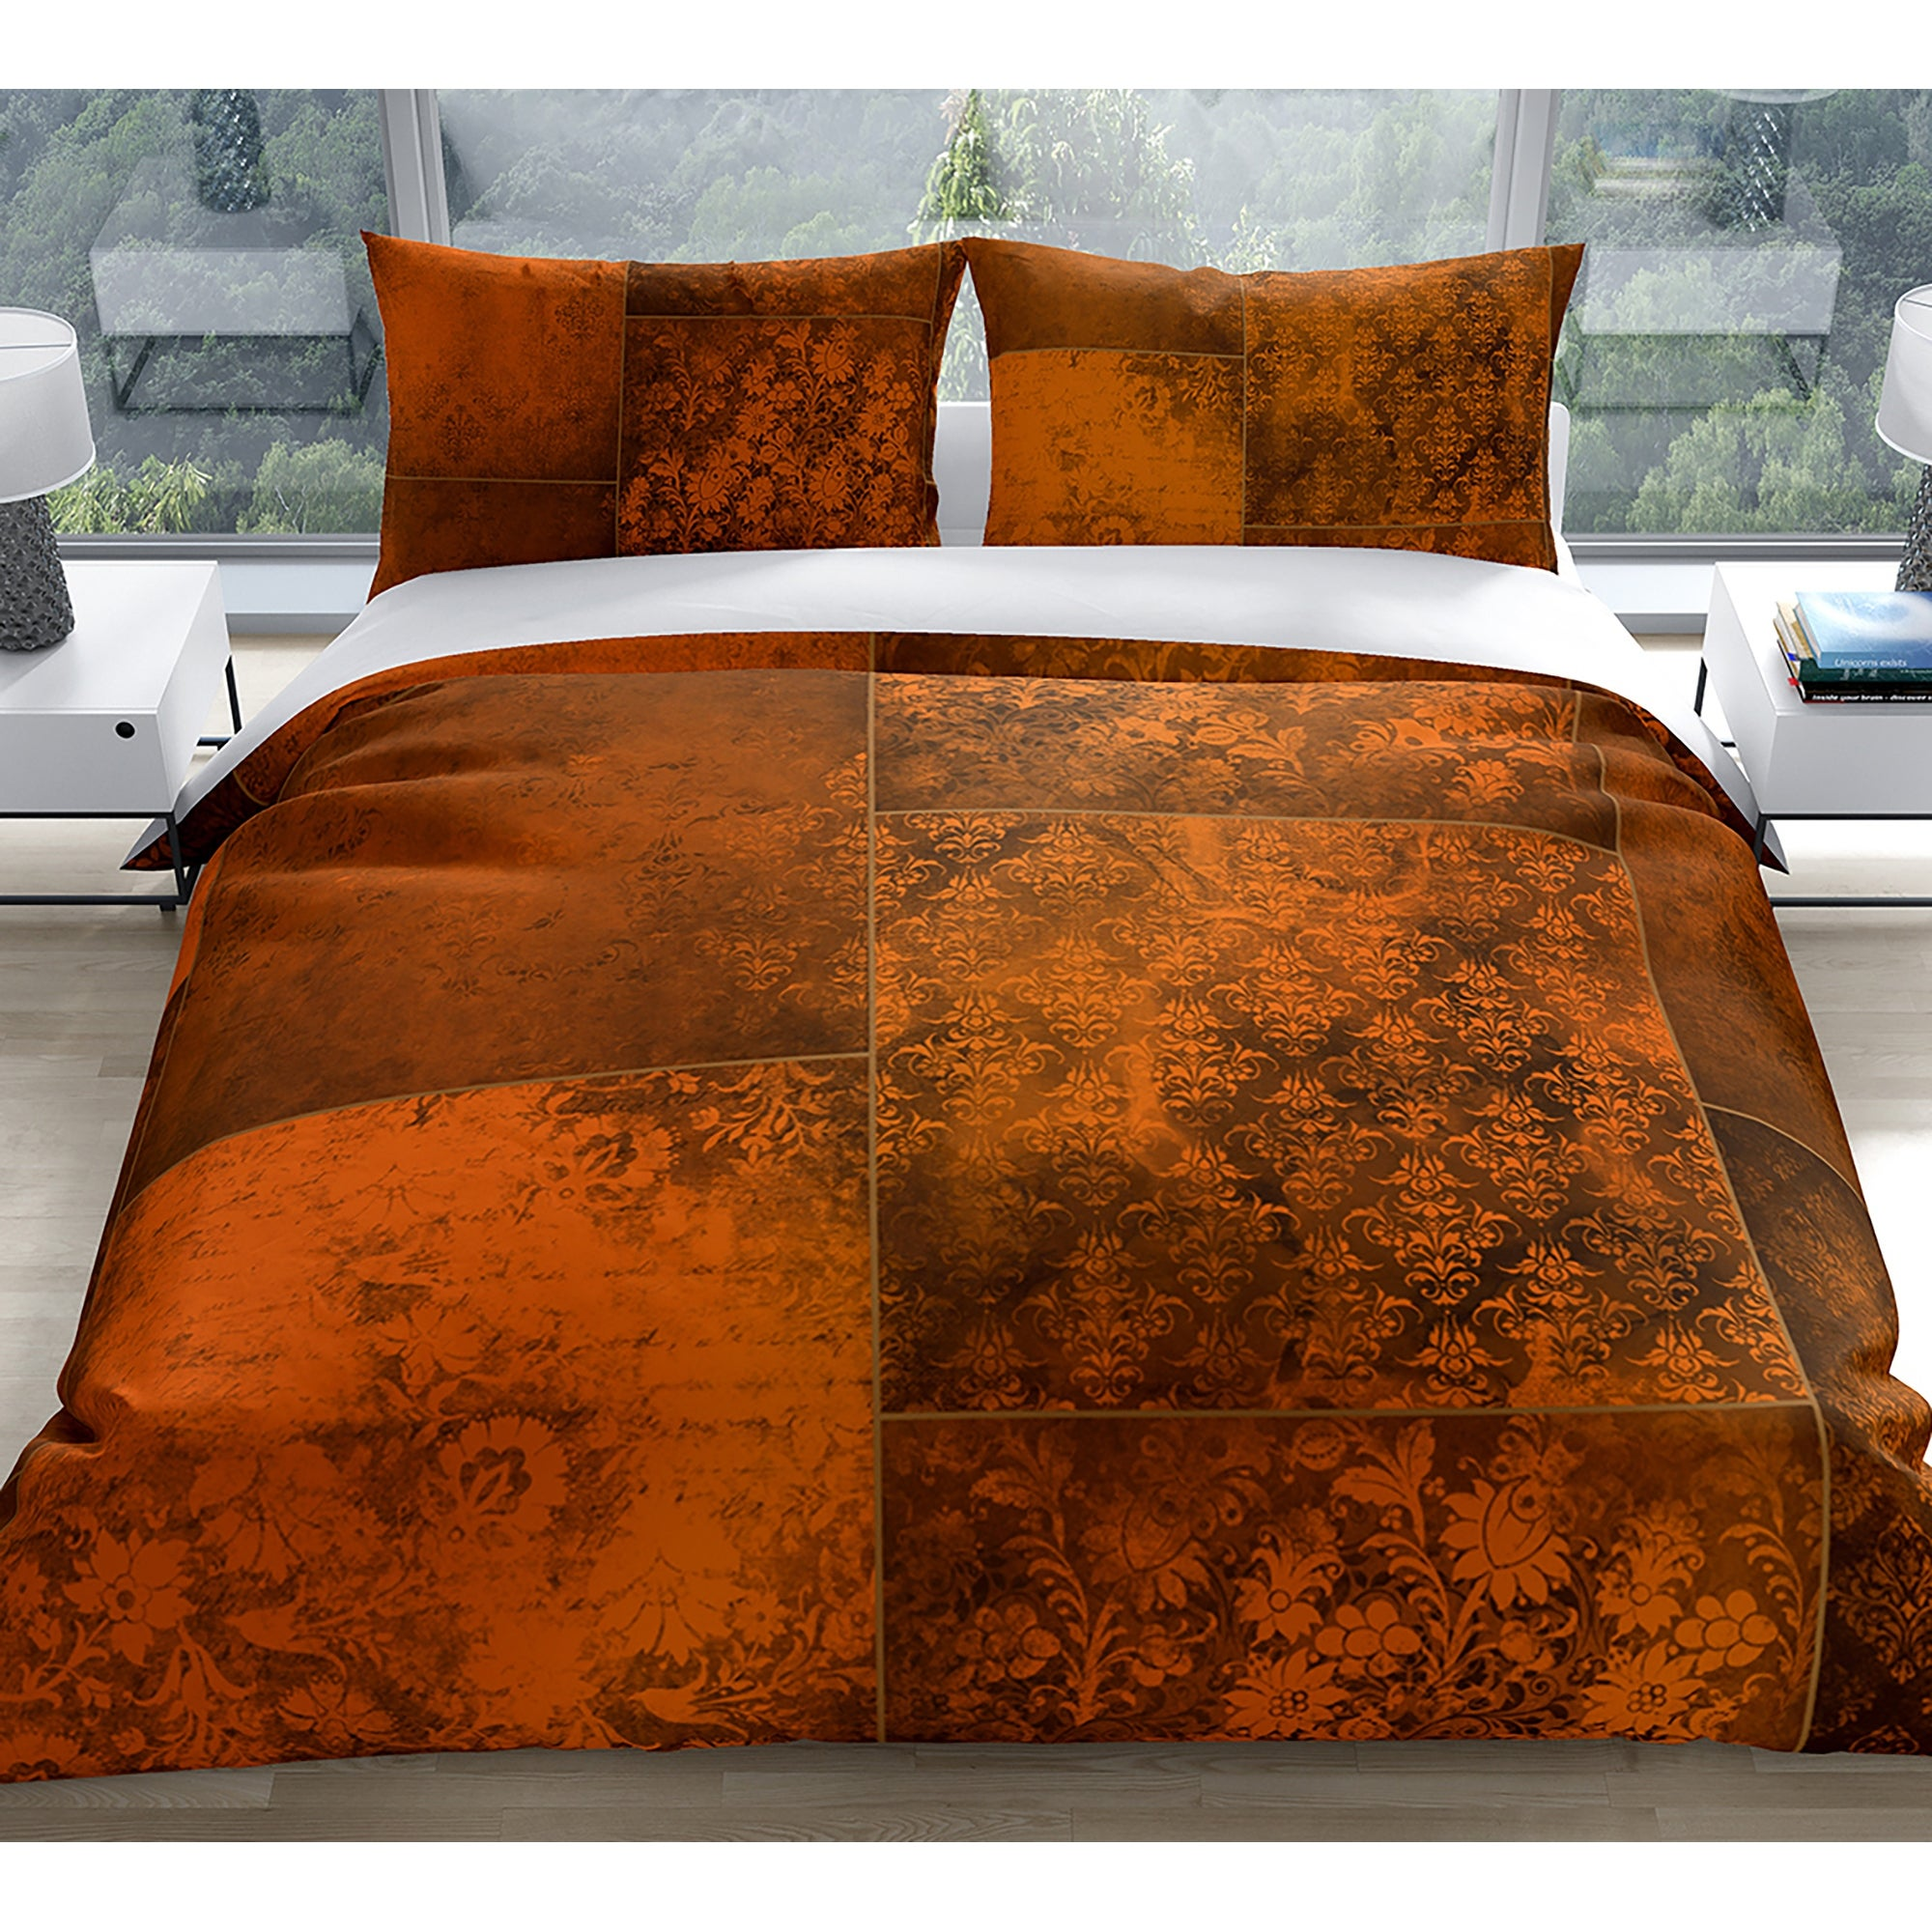 Eclectic Bohemian Patchwork Rust Duvet Cover By Kavka Designs On Sale Overstock 30879265